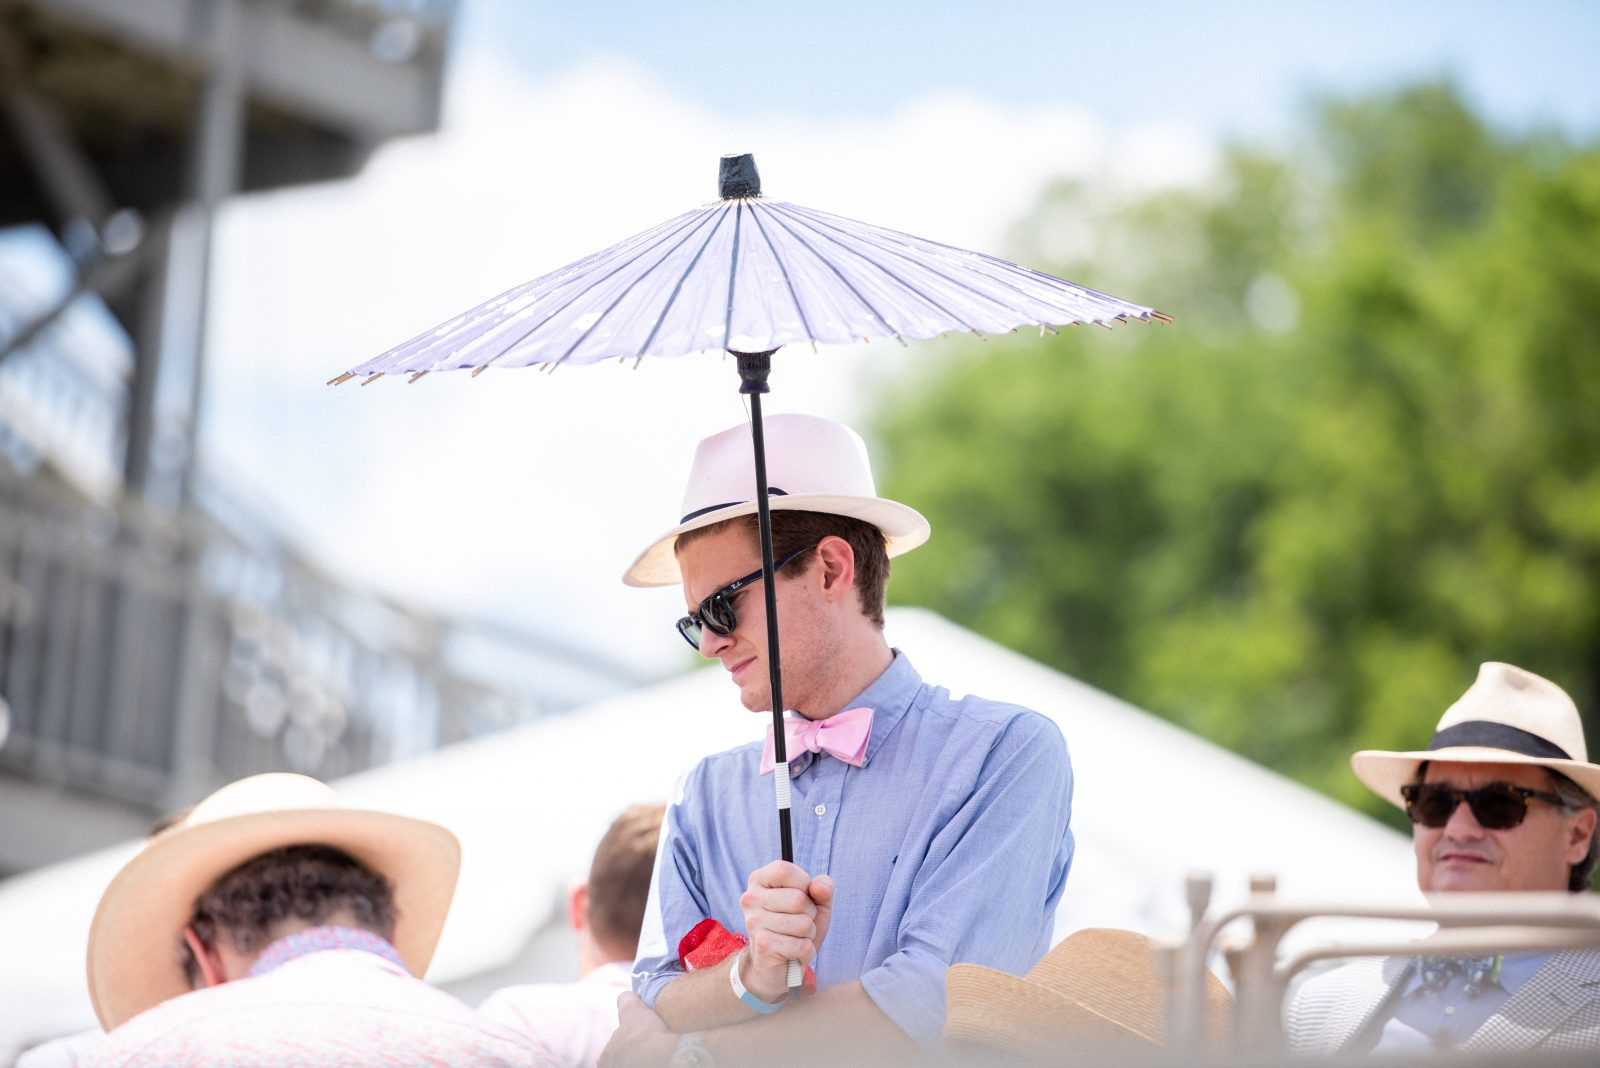 Man in a pink bowtie, blue button-up shirt, and white fedora at Steeplechase 21